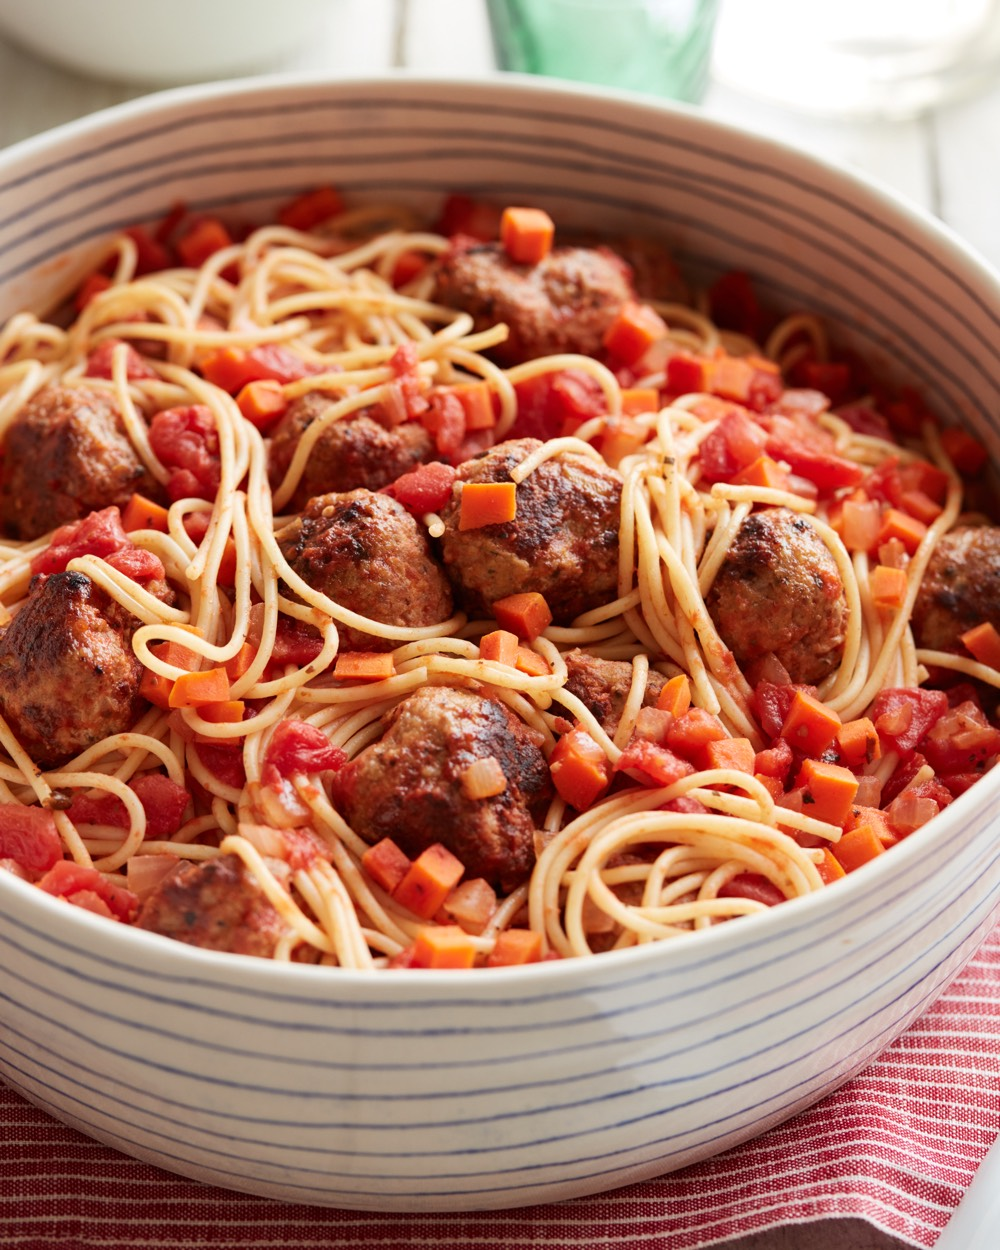 Spaghetti with Turkey Meatballs from weelicious.com